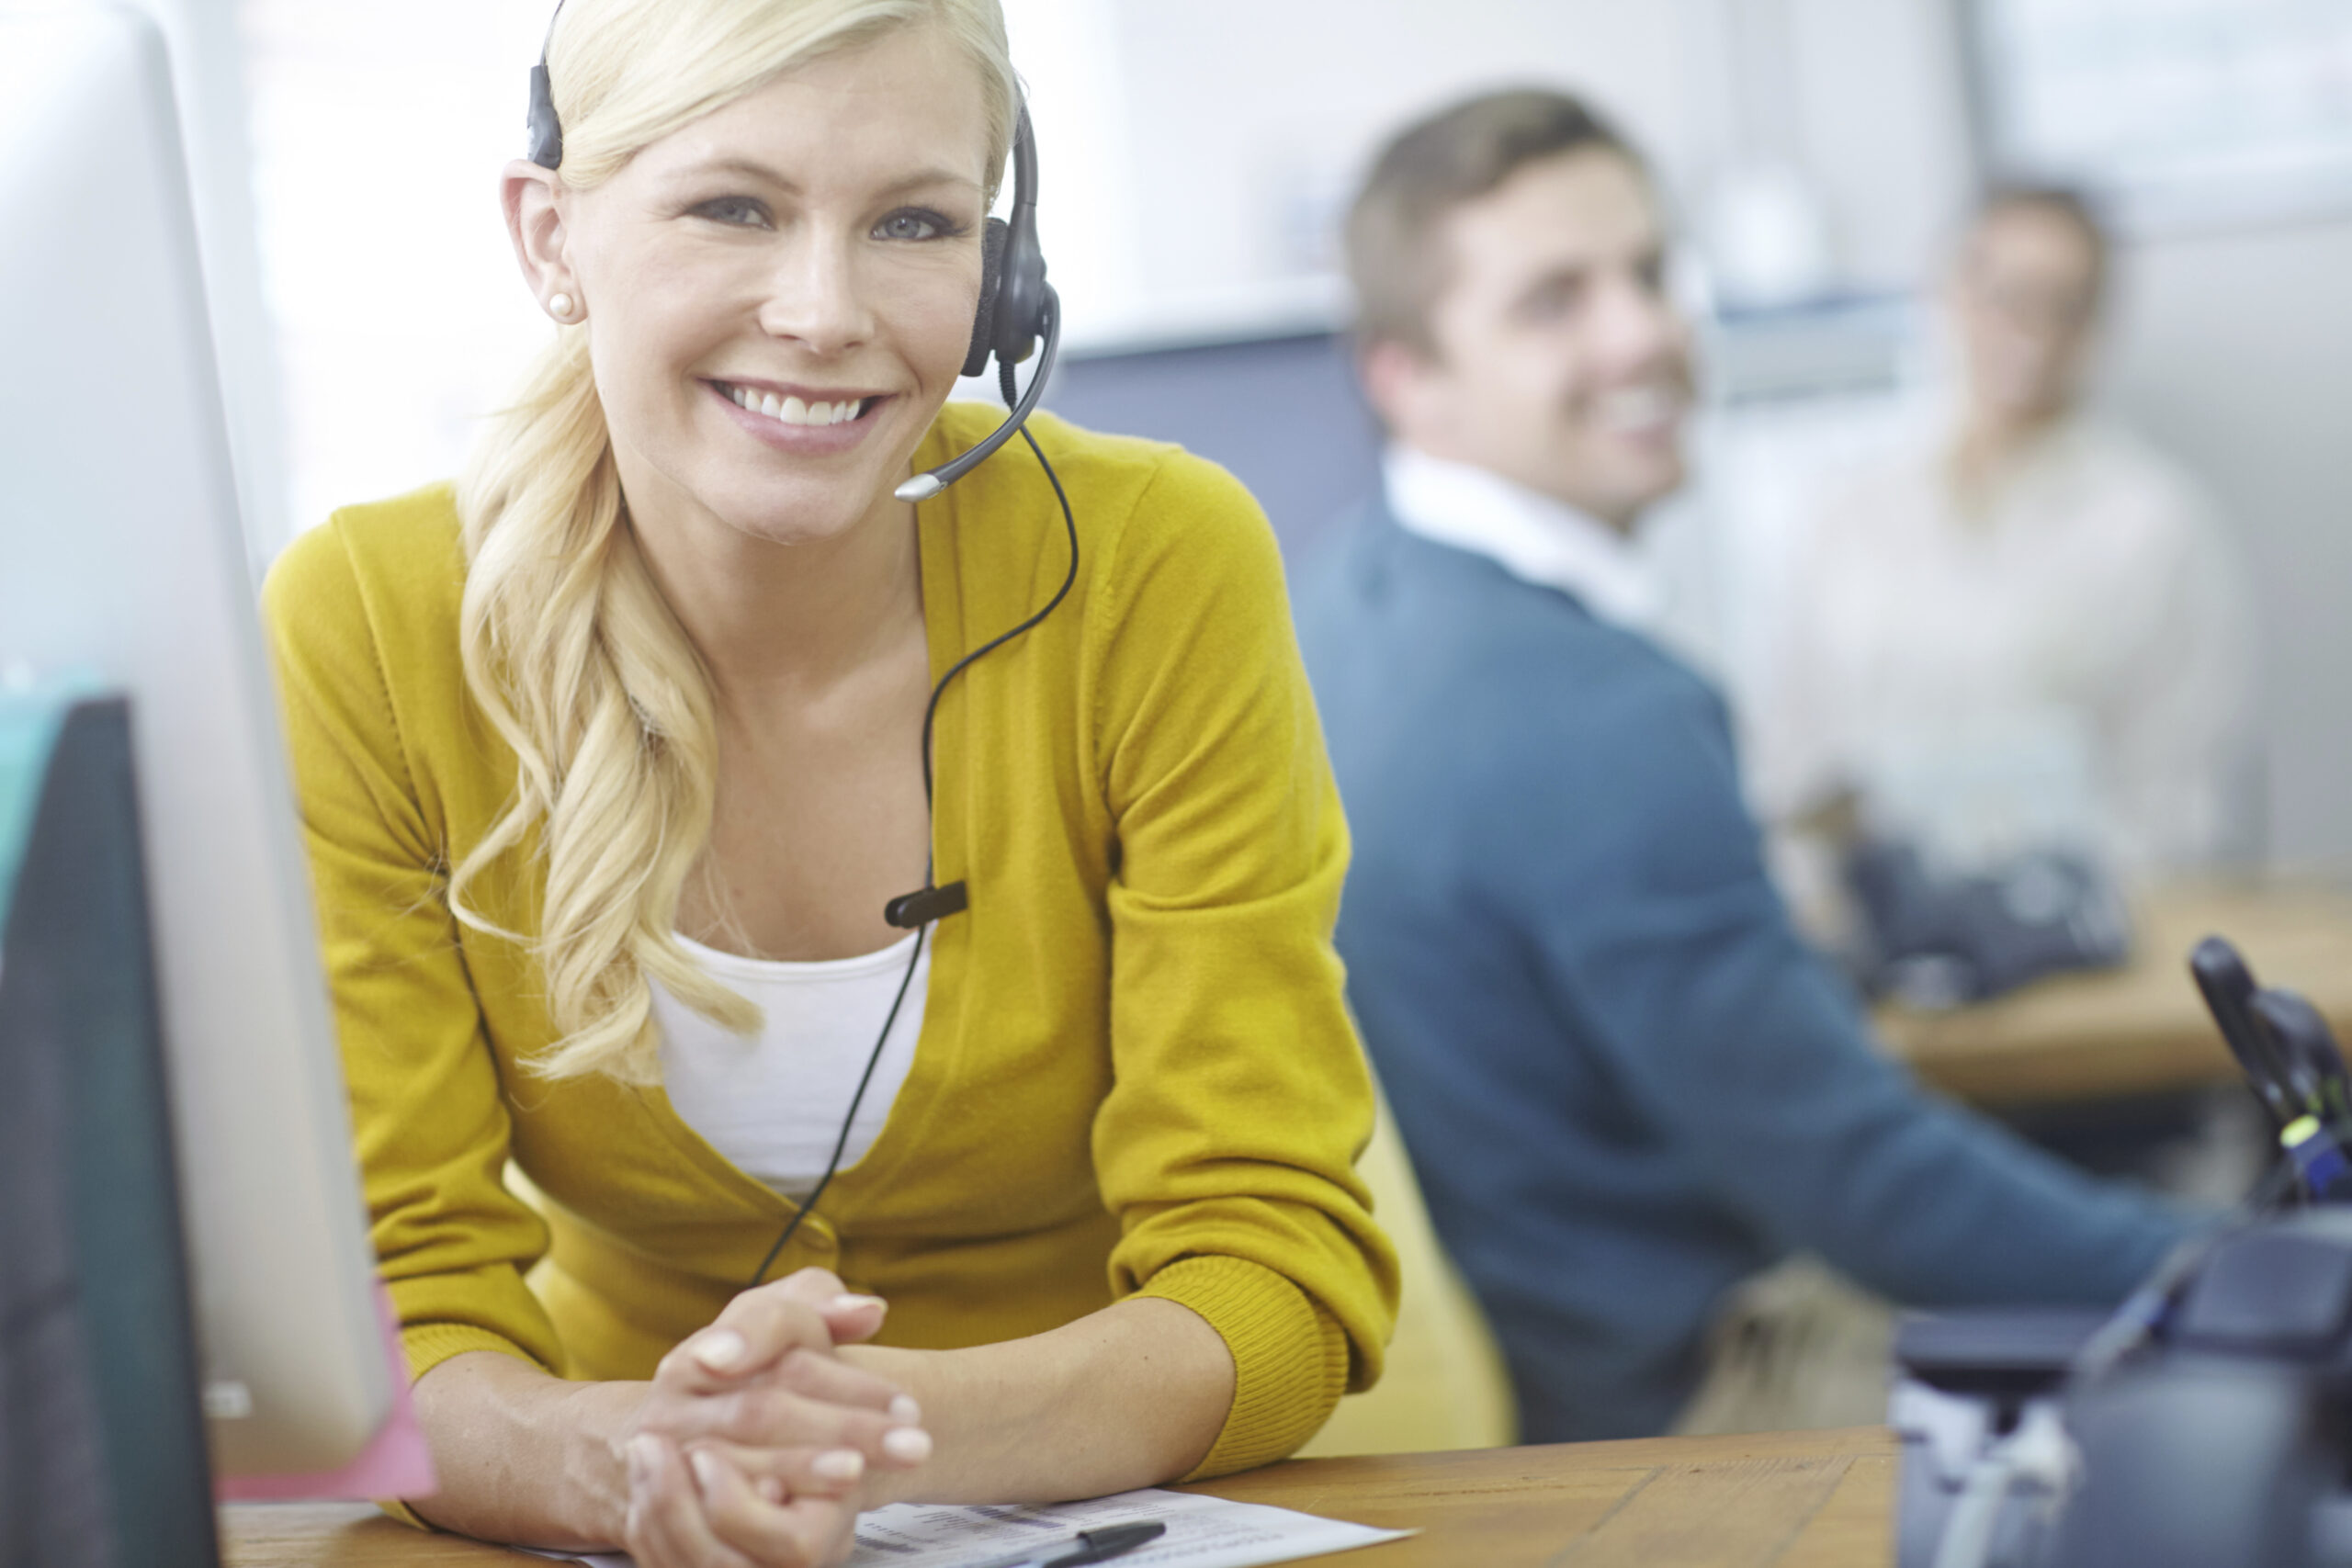 Our friendly customer support staff are ready to assist you